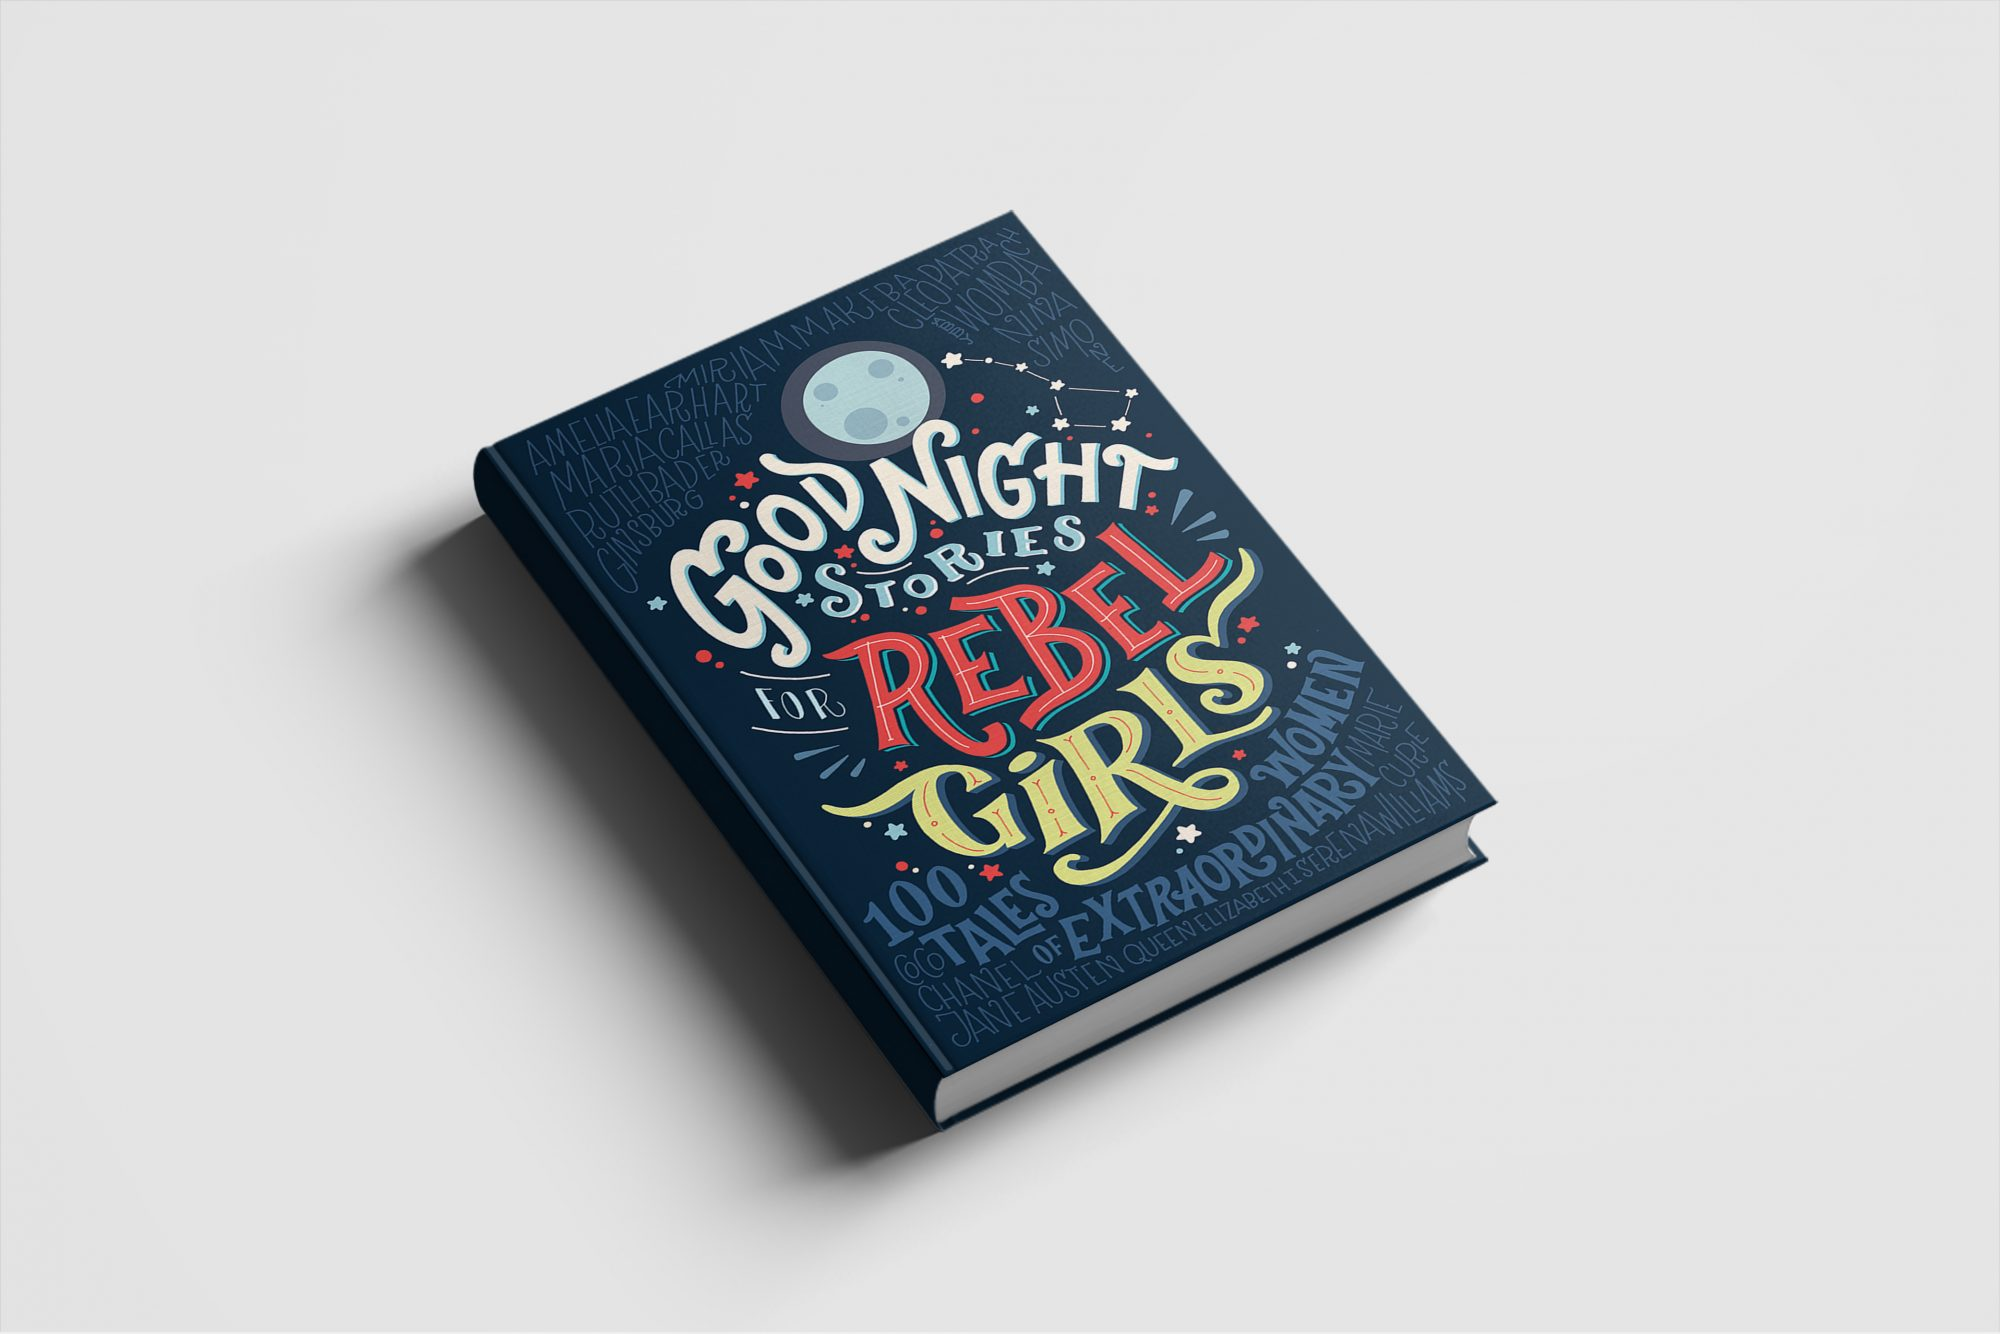 good-night-stories-rebel-girls